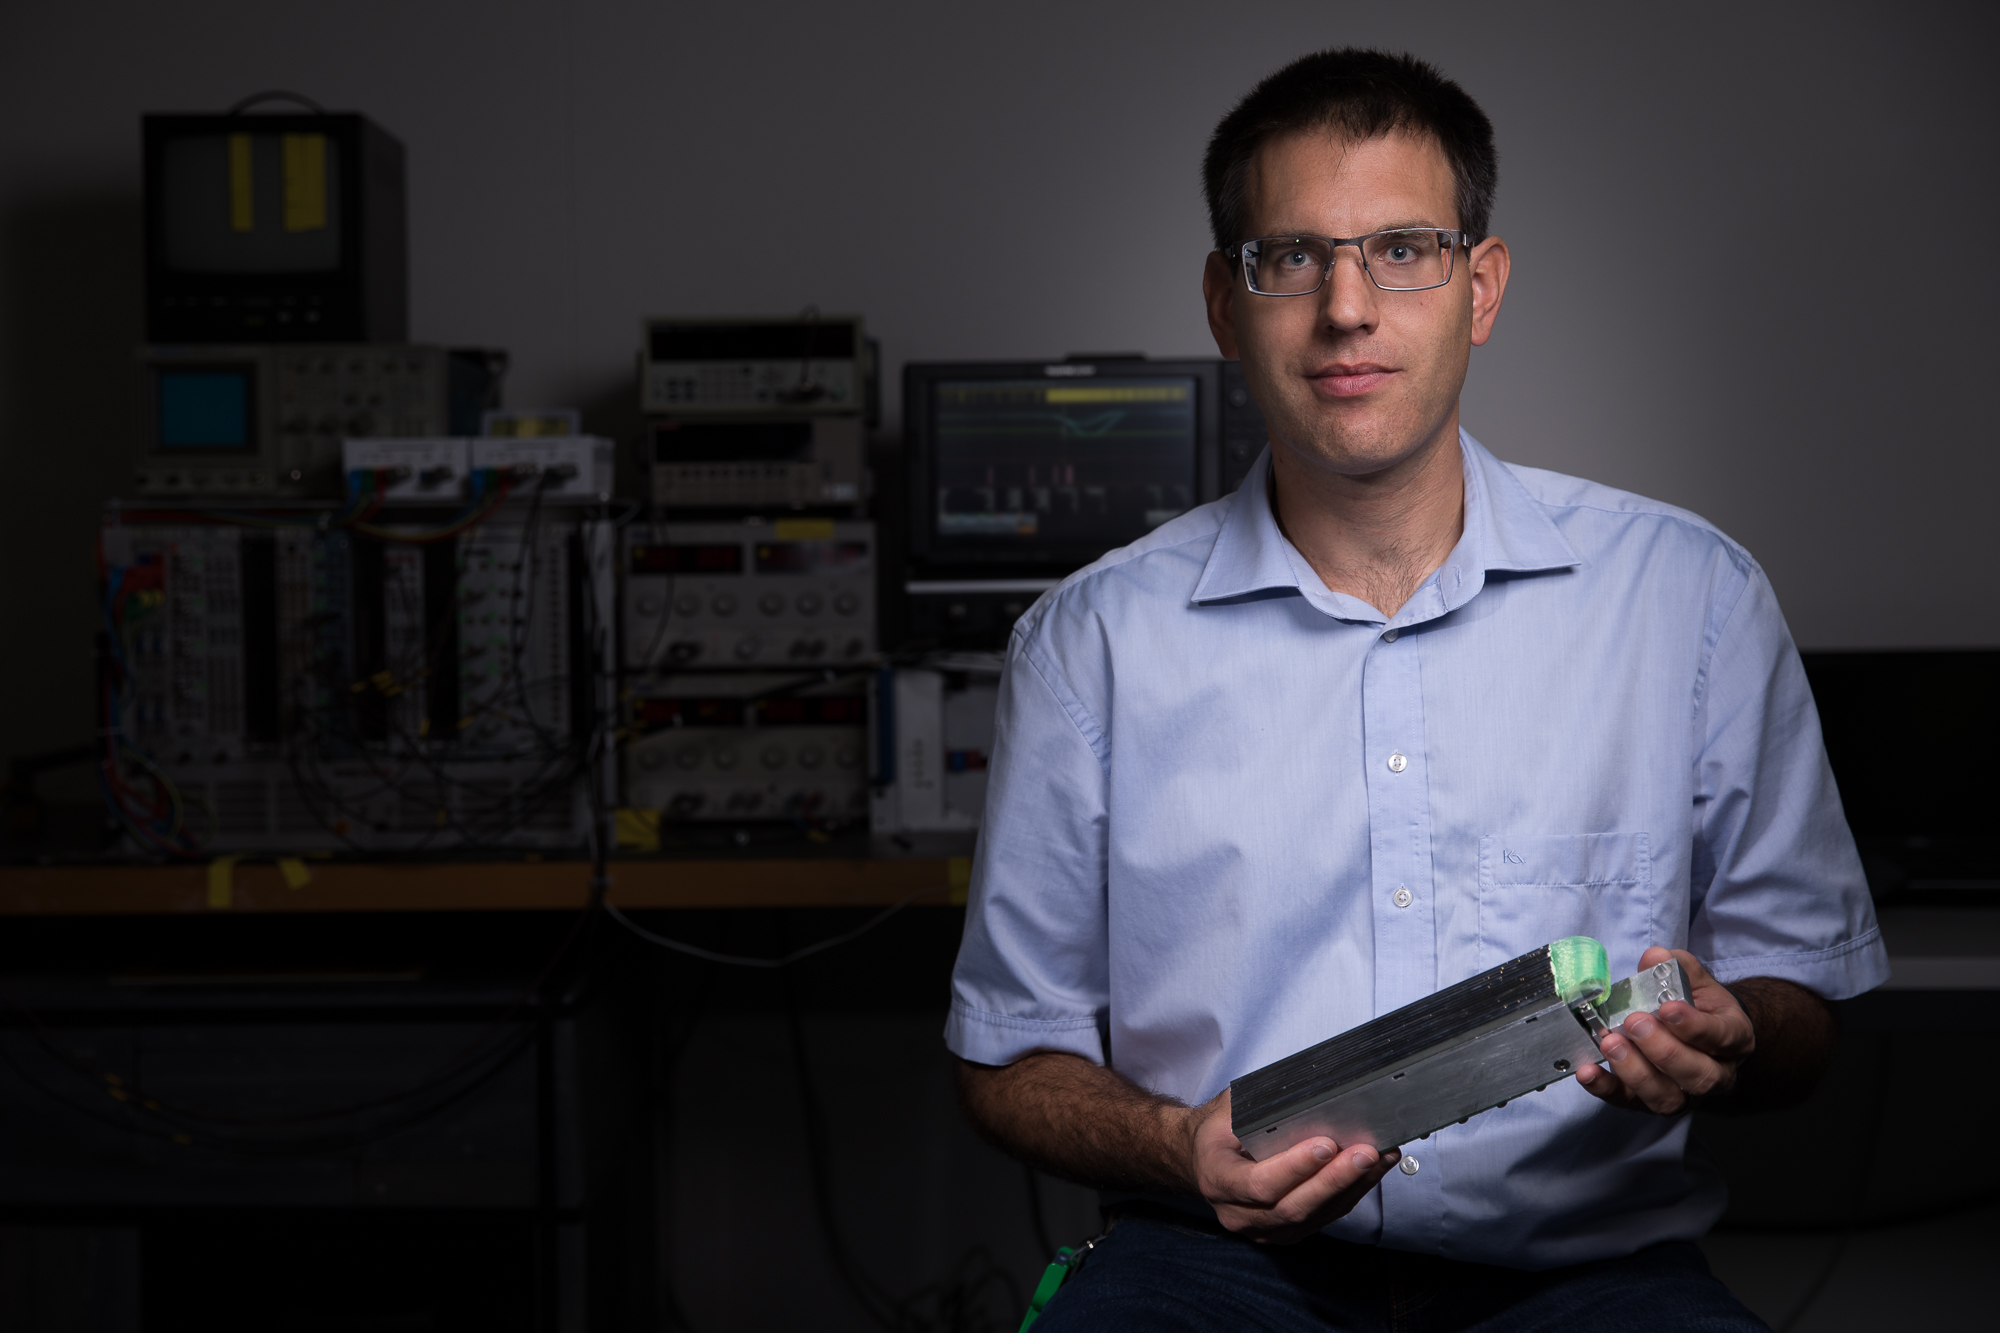 Jean-Baptiste Mosset, Gewinner eines PSI Founder Fellowships. In den Händen hält er einen Teil eines Neutronendetektors. (Foto: Paul Scherrer Institut/Mahir Dzambegovic)